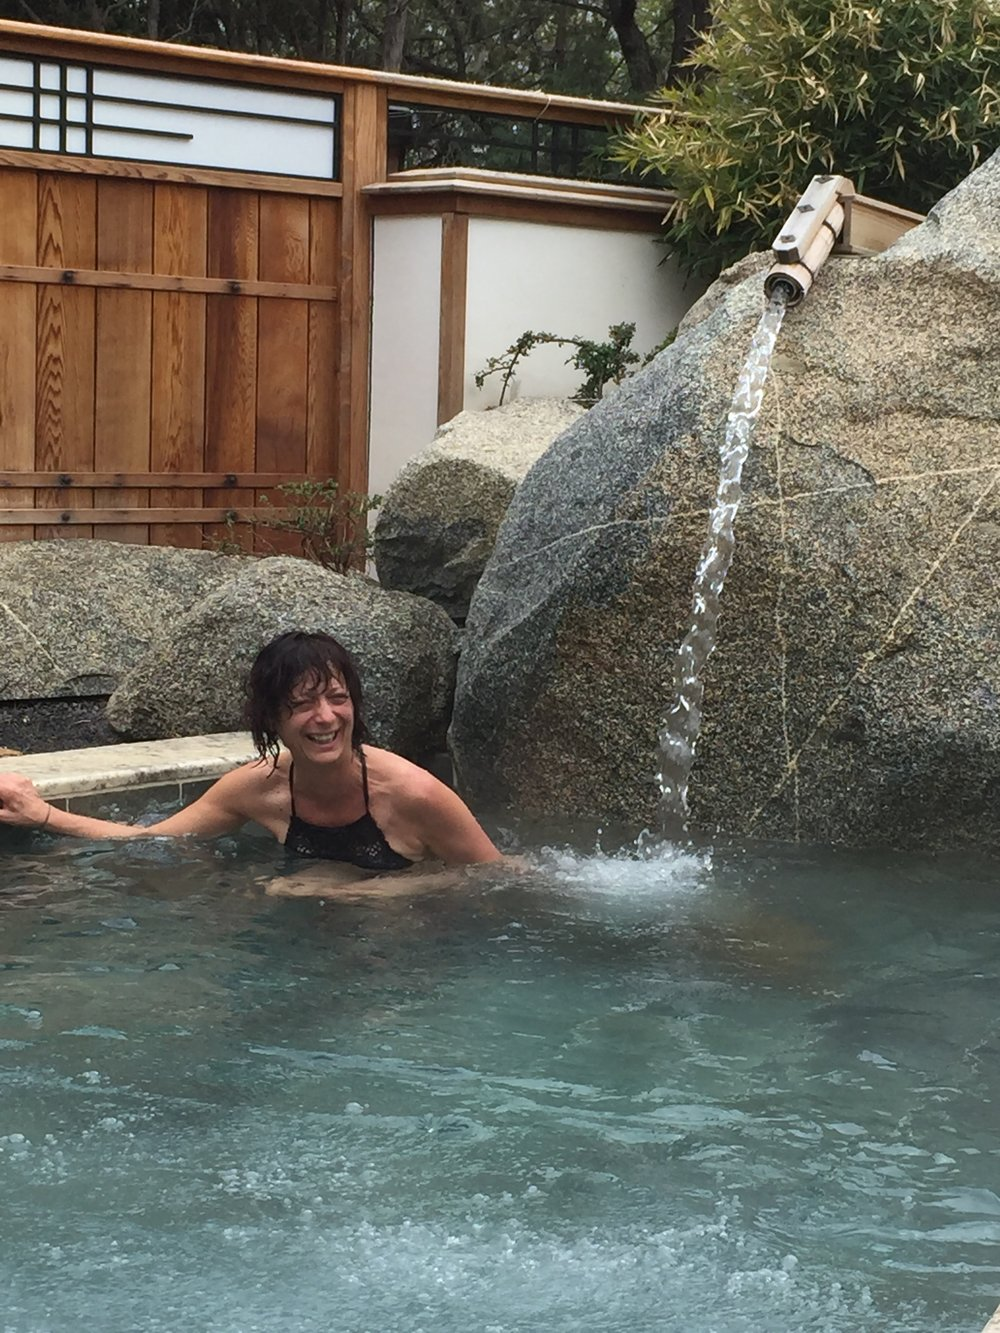 April 27, 2017. Imagine a Japanese garden in the mountains of Santa Fe, New Mexico, with hot tubs, saunas, the sound of water and birds... Ten Thousand Waves is the most awesome spa experience I've ever had.